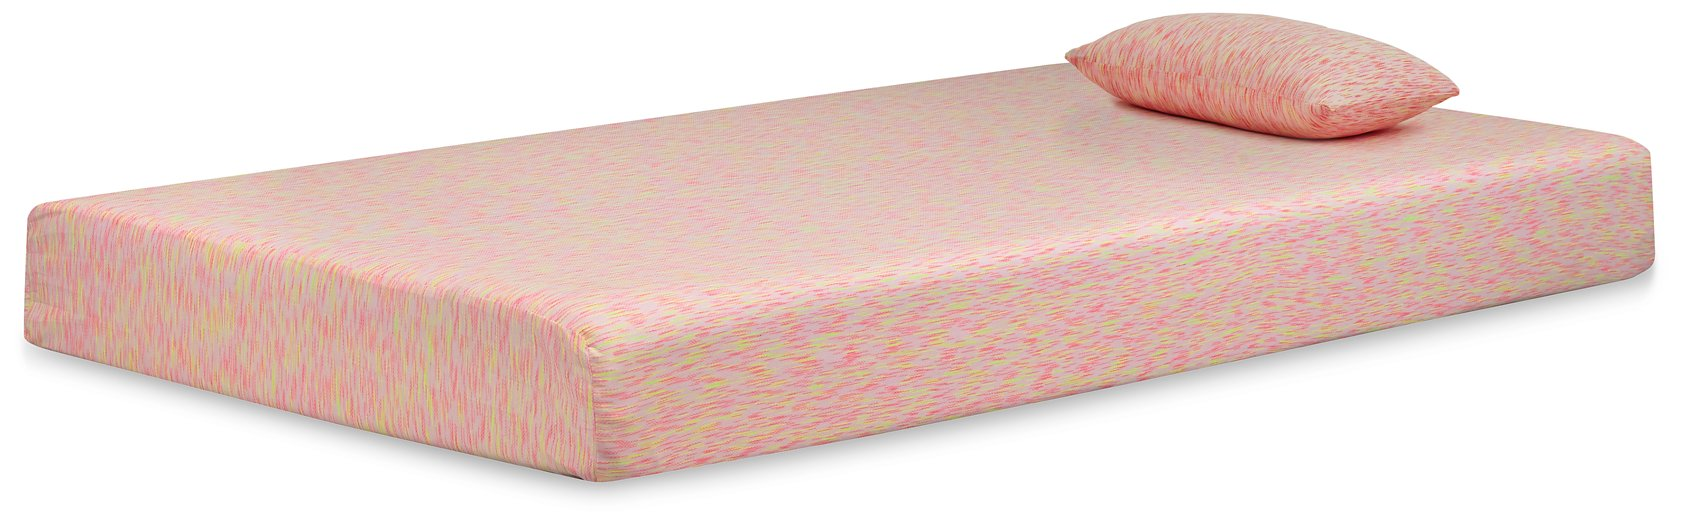 iKidz Pink Sierra Sleep by Ashley Pink Twin Mattress and Pillow